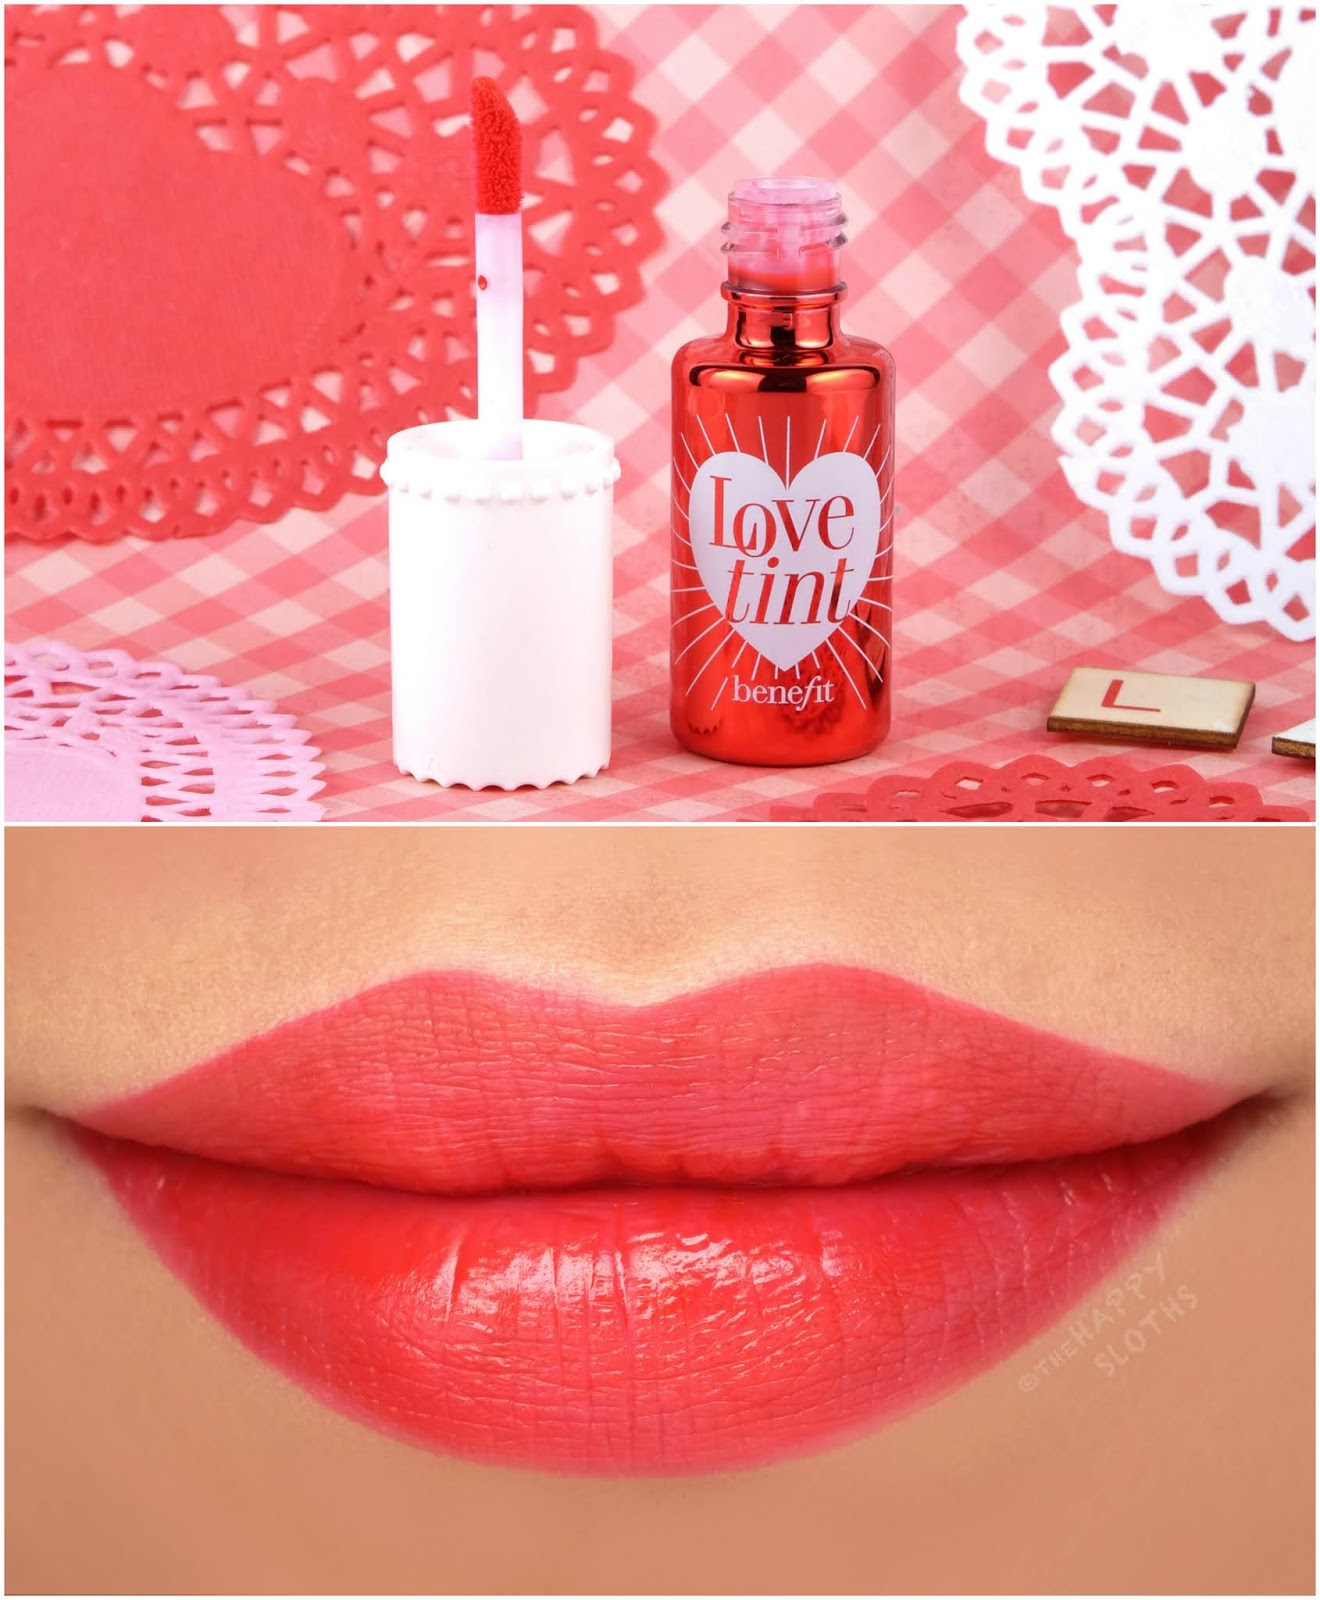 Benefit Cosmetics | Lovetint Lip & Cheek Stain: Review and Swatches